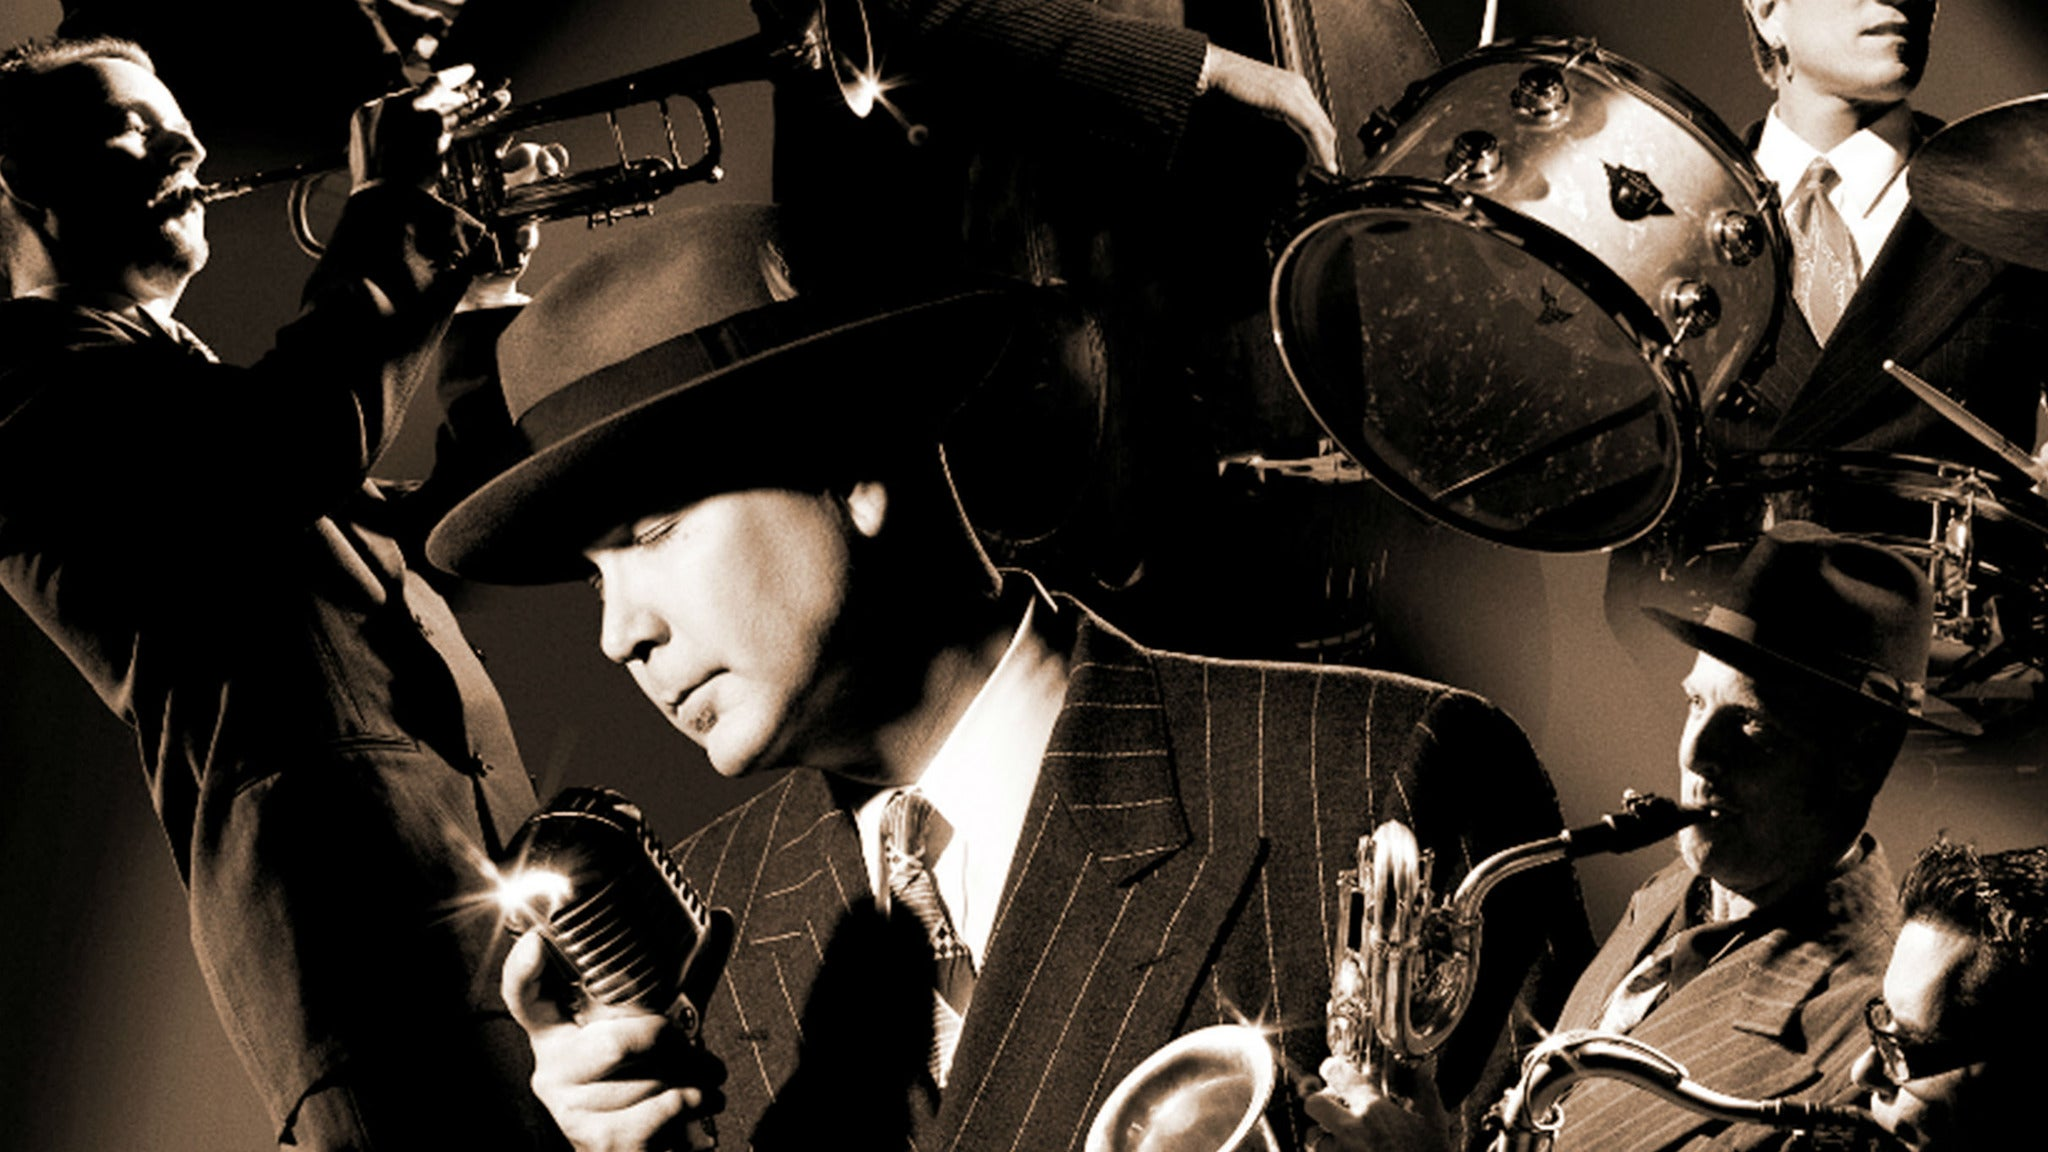 Big Bad Voodoo Daddy at Humphreys Concerts By the Bay